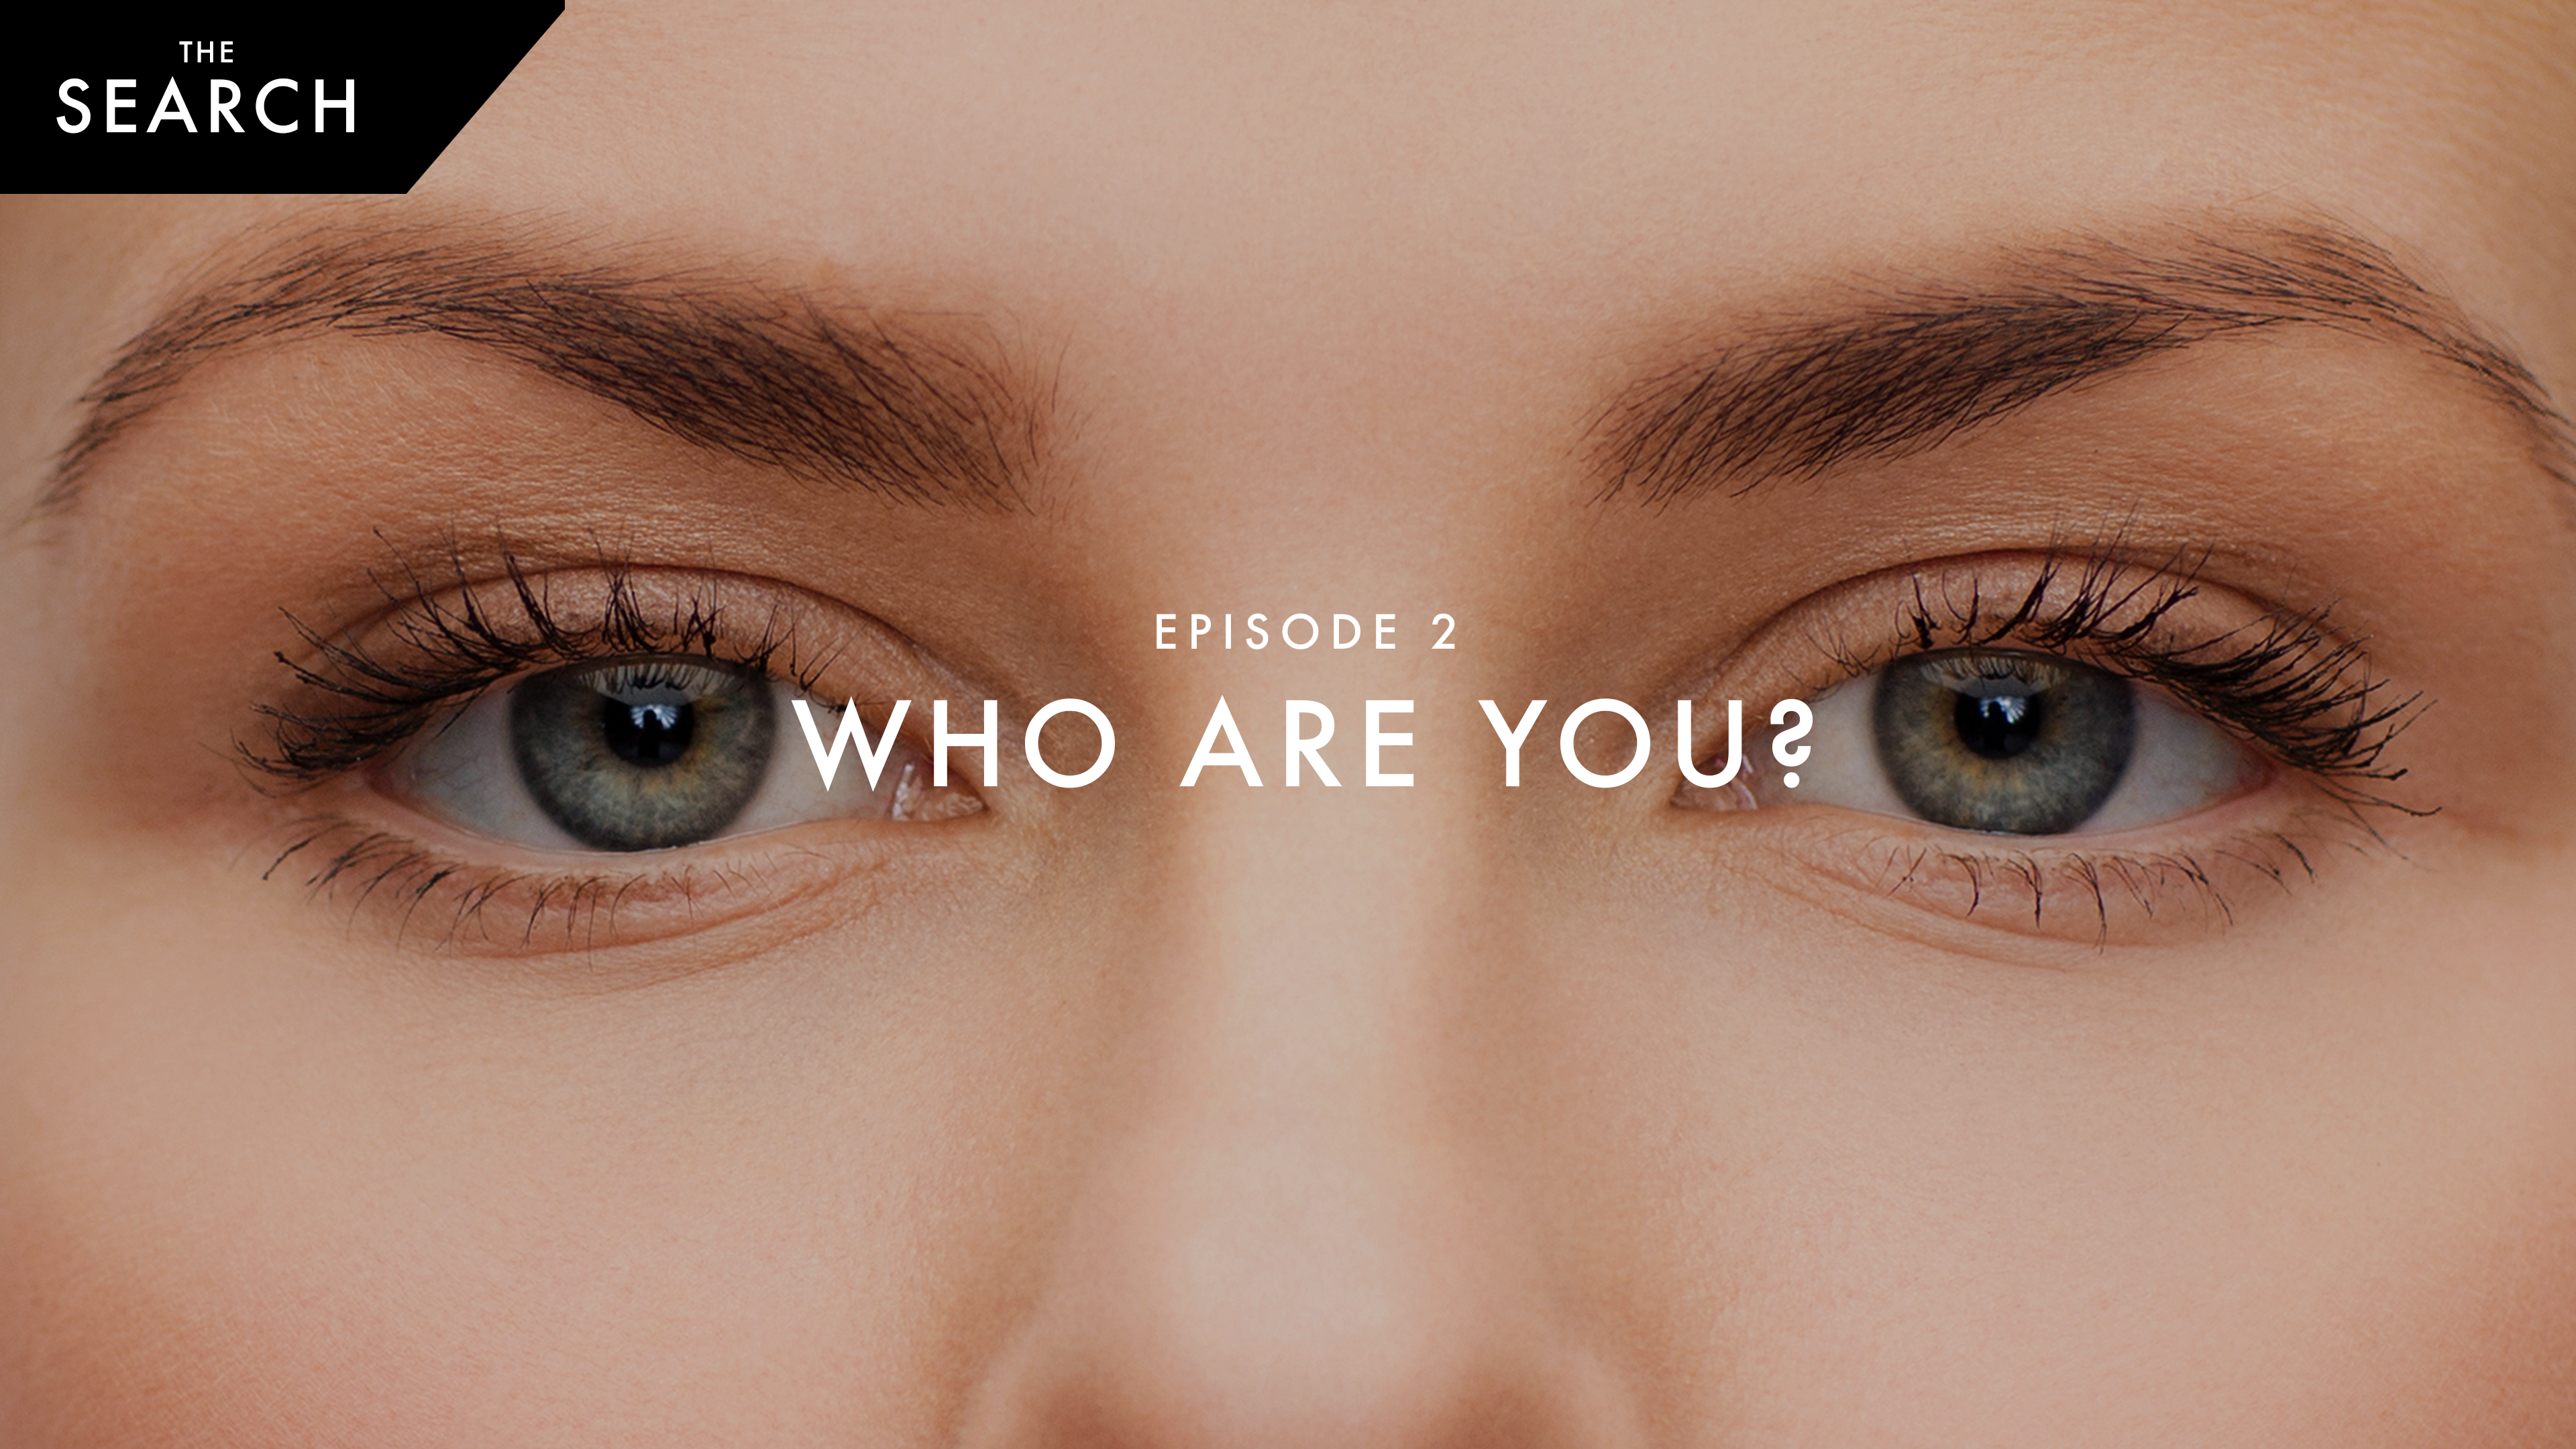 Episode 2: Who Are You?